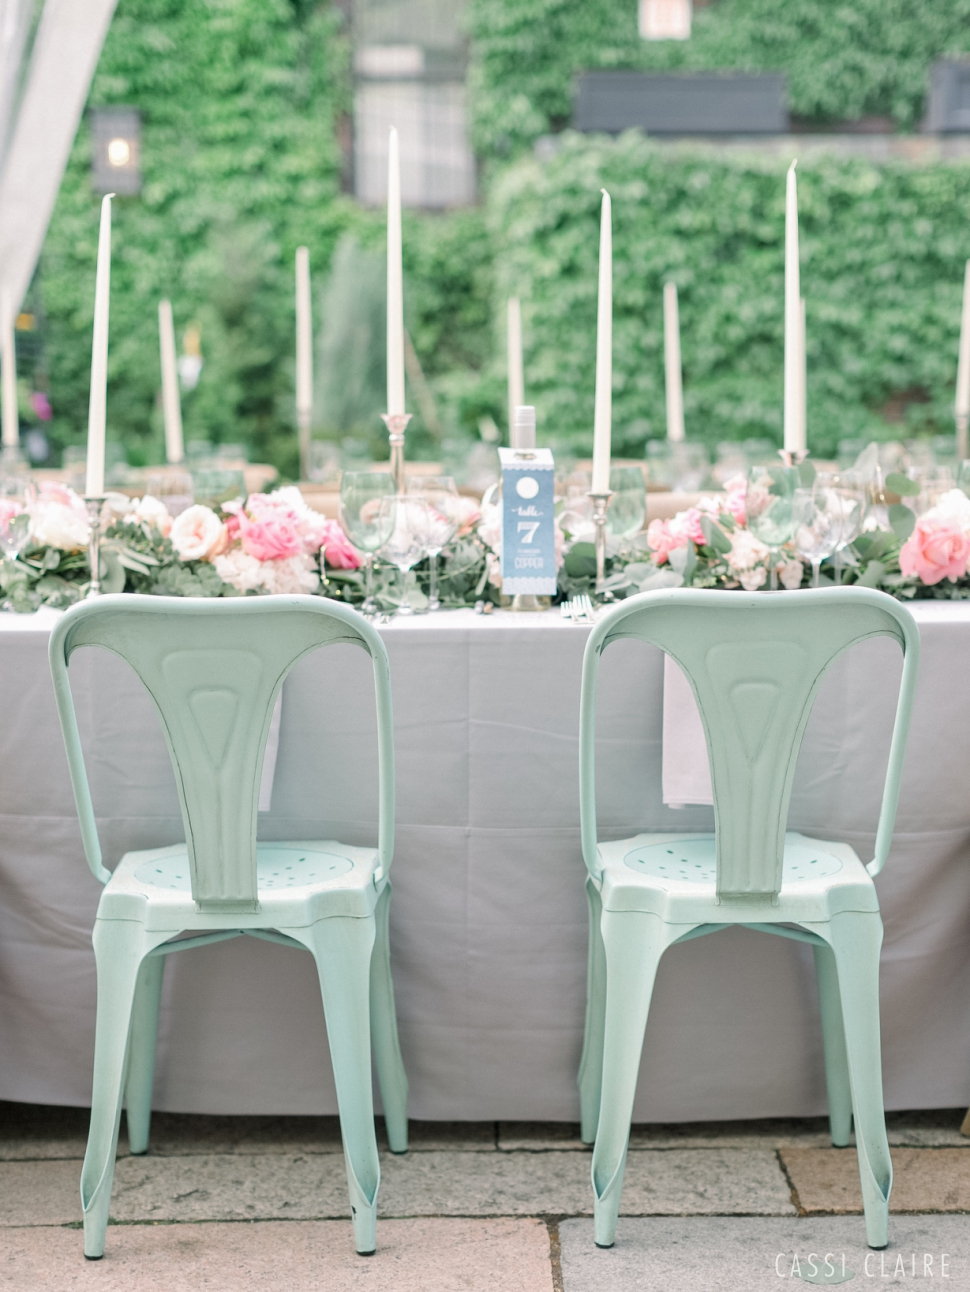 The-Foundry-LIC-Wedding_CassiClaire_38.jpg